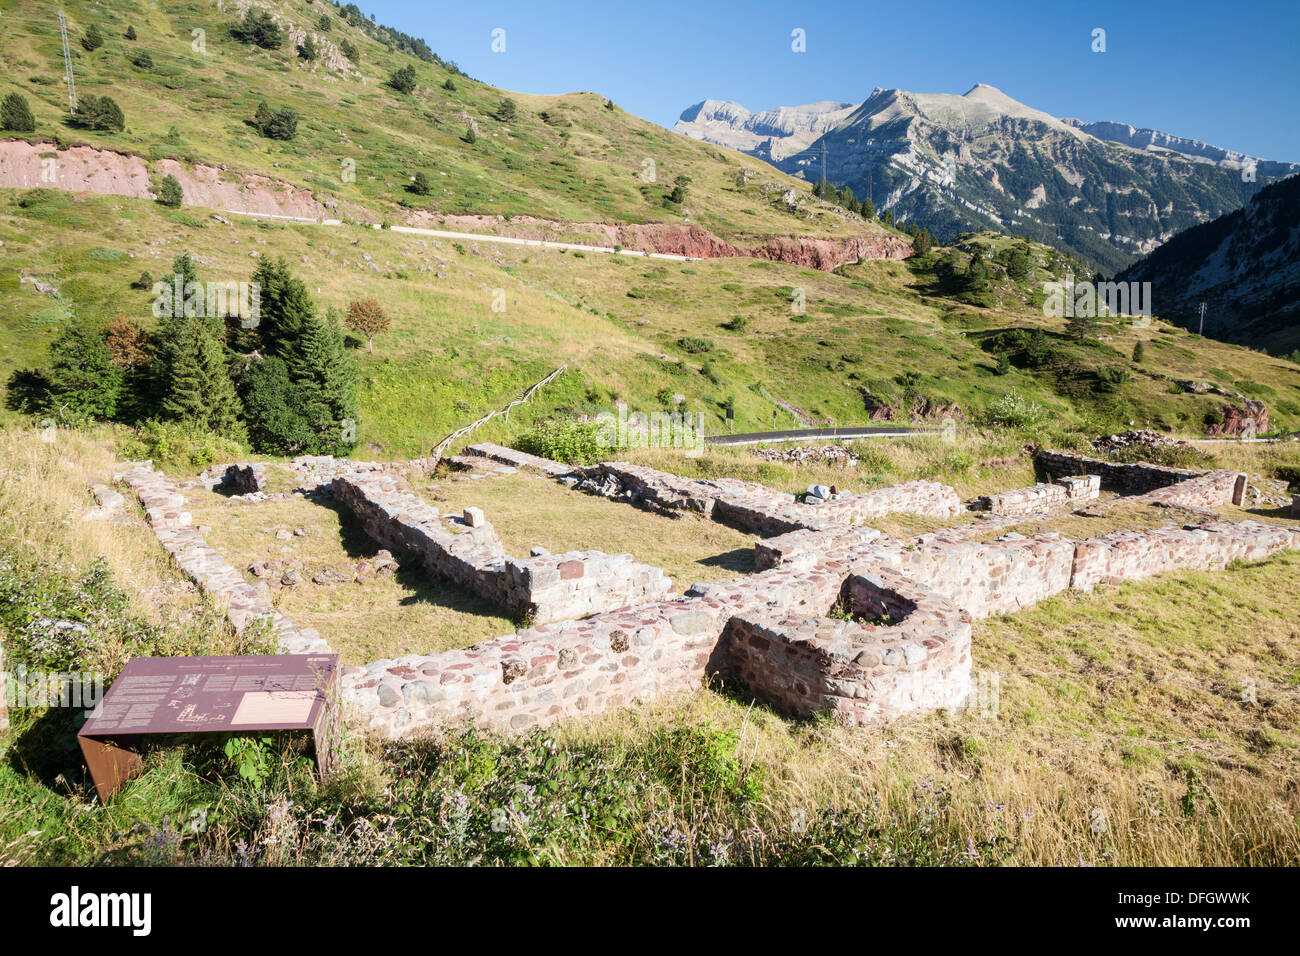 Hospital of Saint Christine of Somport in St. Jame's way, Candanchú, Huesca, Spain - Stock Image